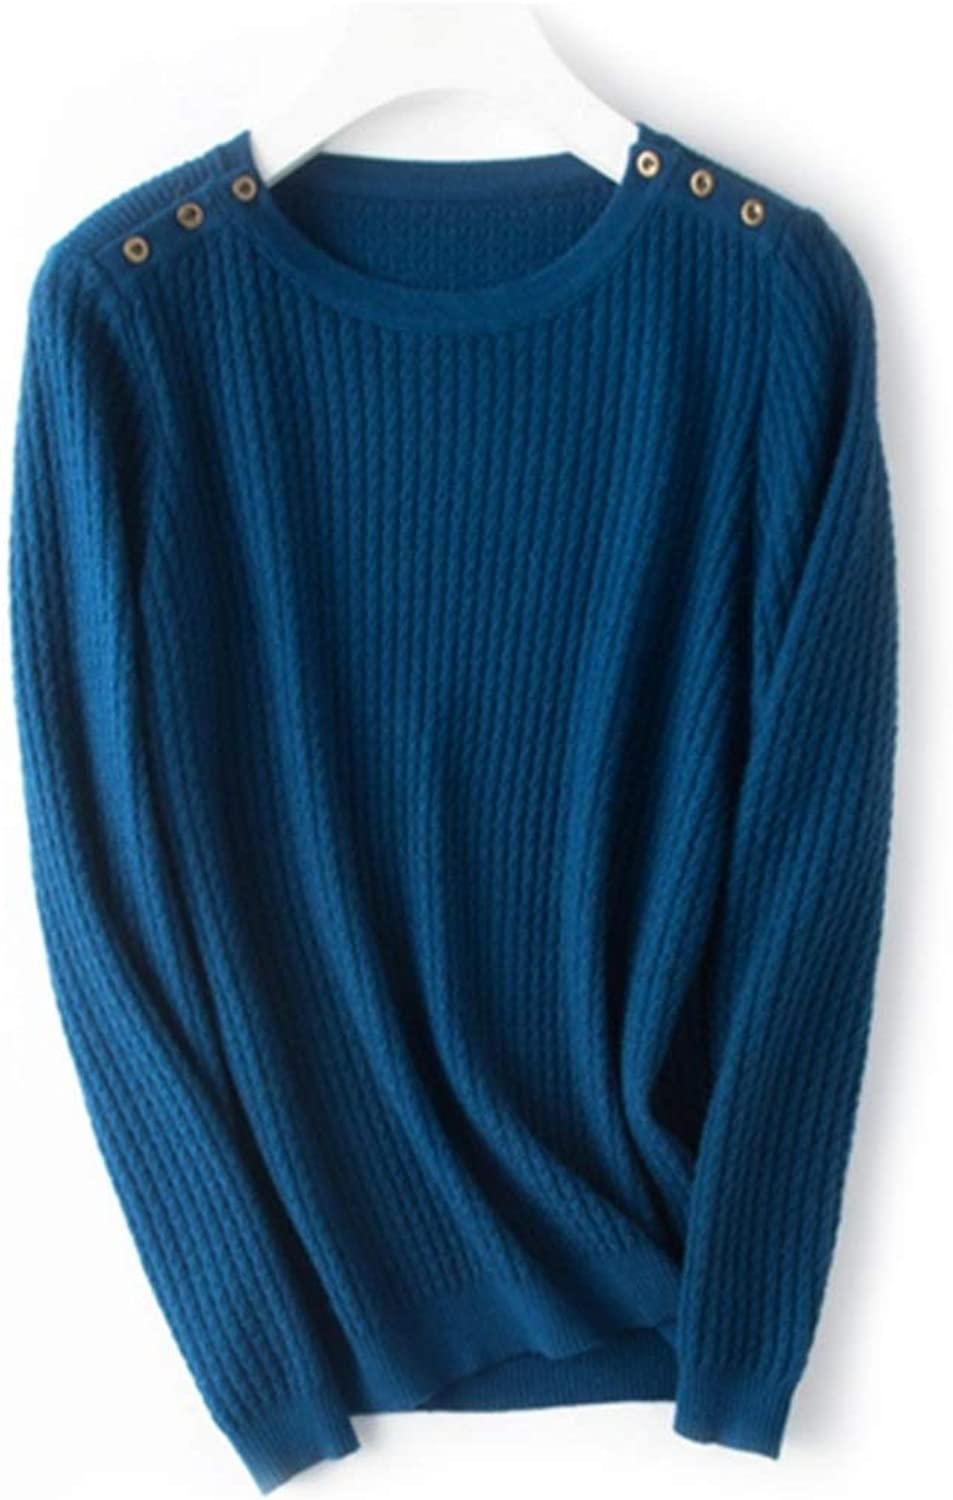 CTARCROW Women's Warm Sweater Knit Round Neck Long Sleeve Sweater for Autumn Winter (color   bluee, Size   XXXL)